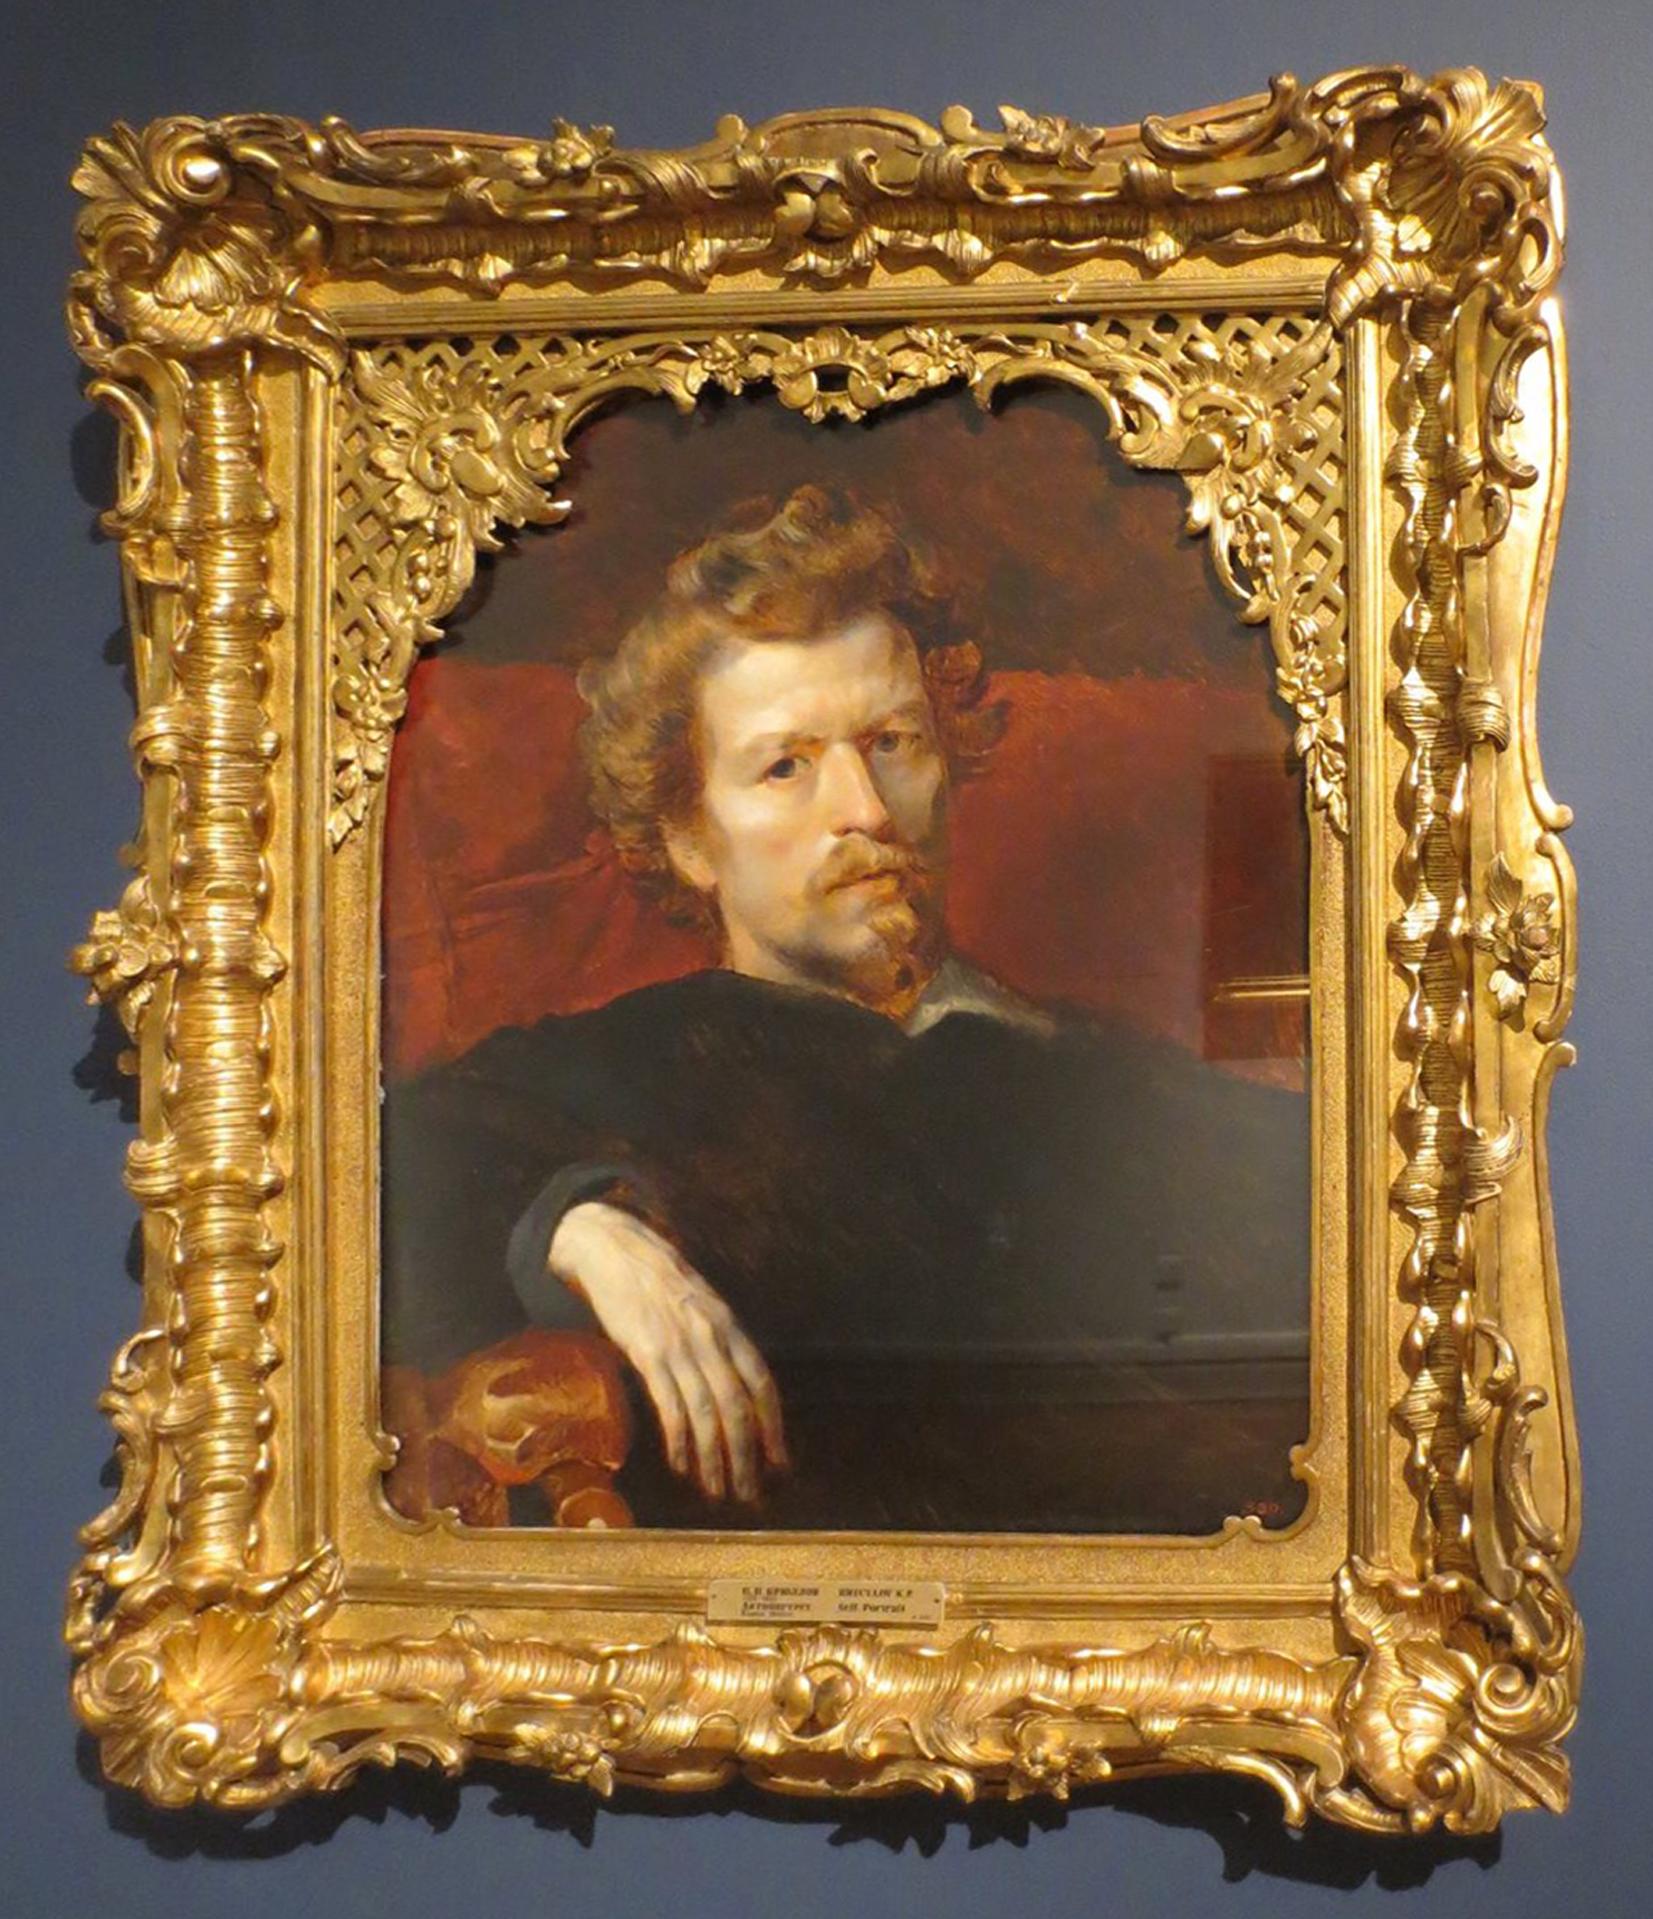 The Frame And The Self Portrait In An Exhibition At The